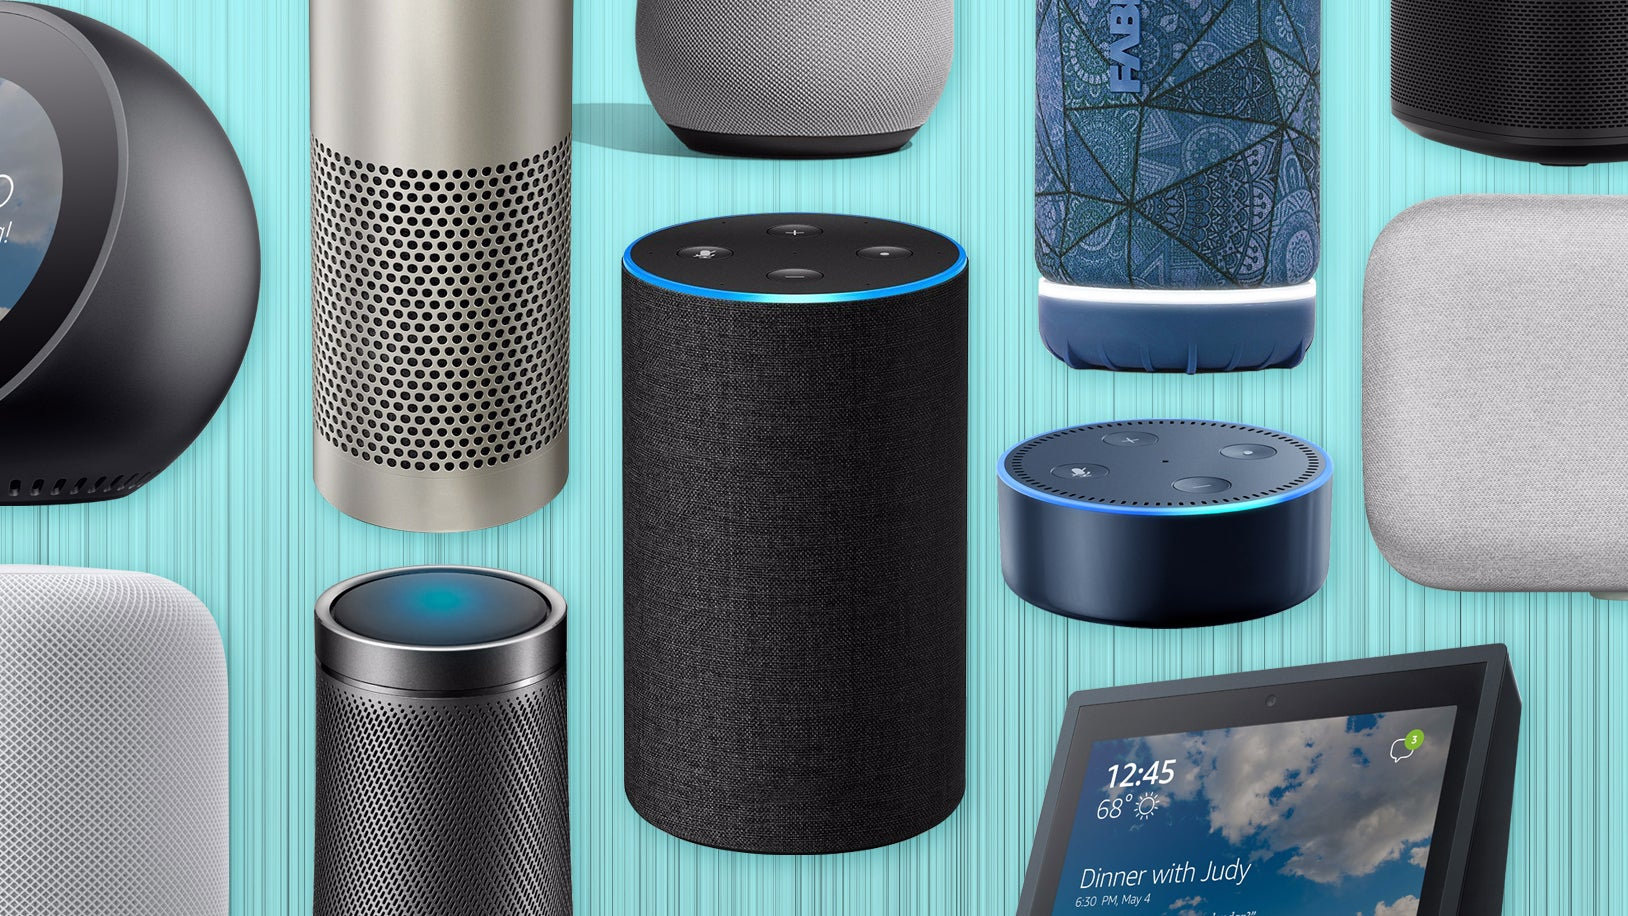 ee01f8a9cd9abb Best smart speakers of 2019: Reviews and buying advice | TechHive